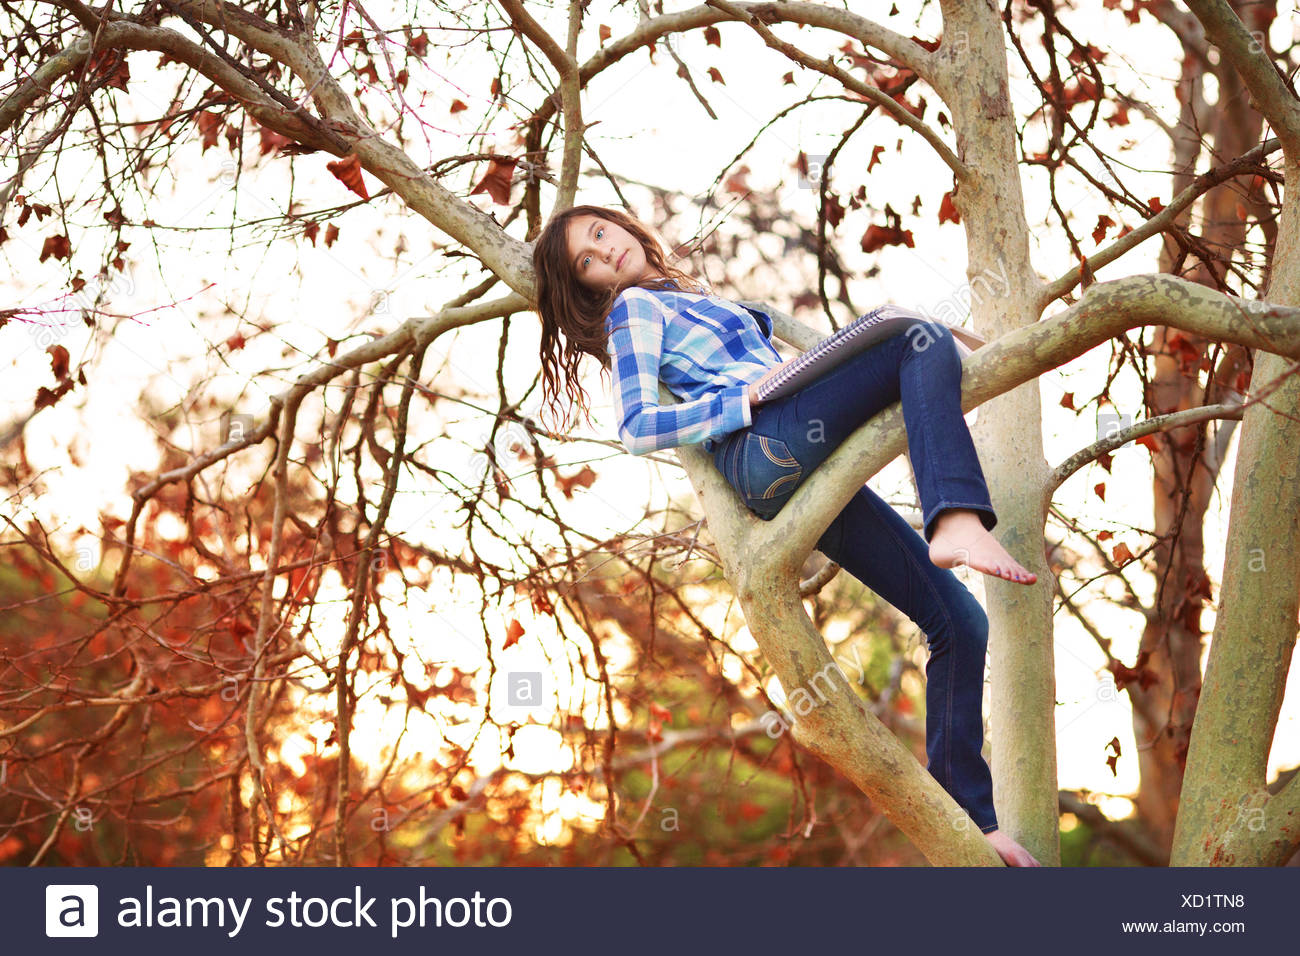 Teenage girl sitting in a tree with drawing pad - Stock Image